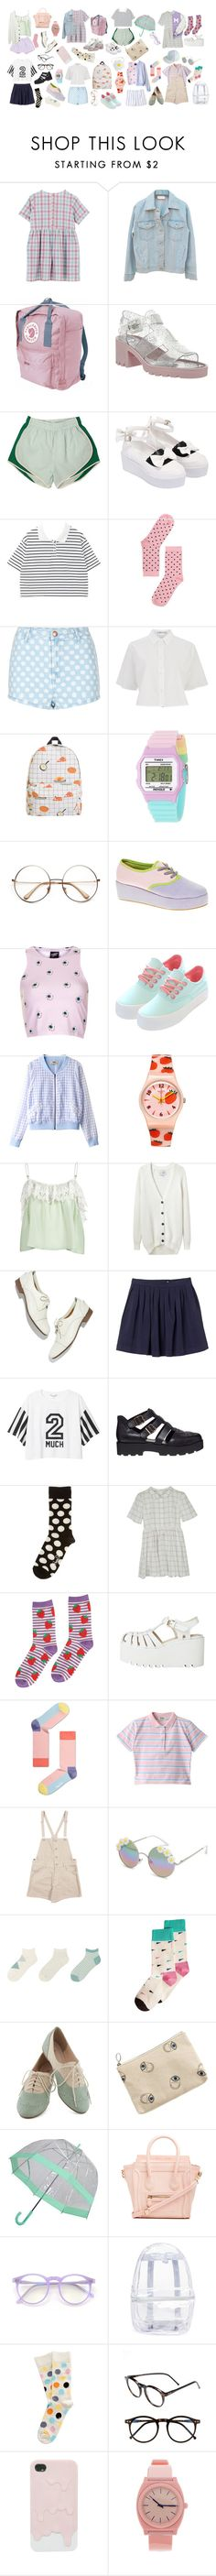 eight day vacation by peachnim on Polyvore featuring Monki, T By Alexander Wang, Each X Other, ODYLYNE, Illustrated People, Topshop, Forever 21, Happy Socks, Uniqlo and ASOS